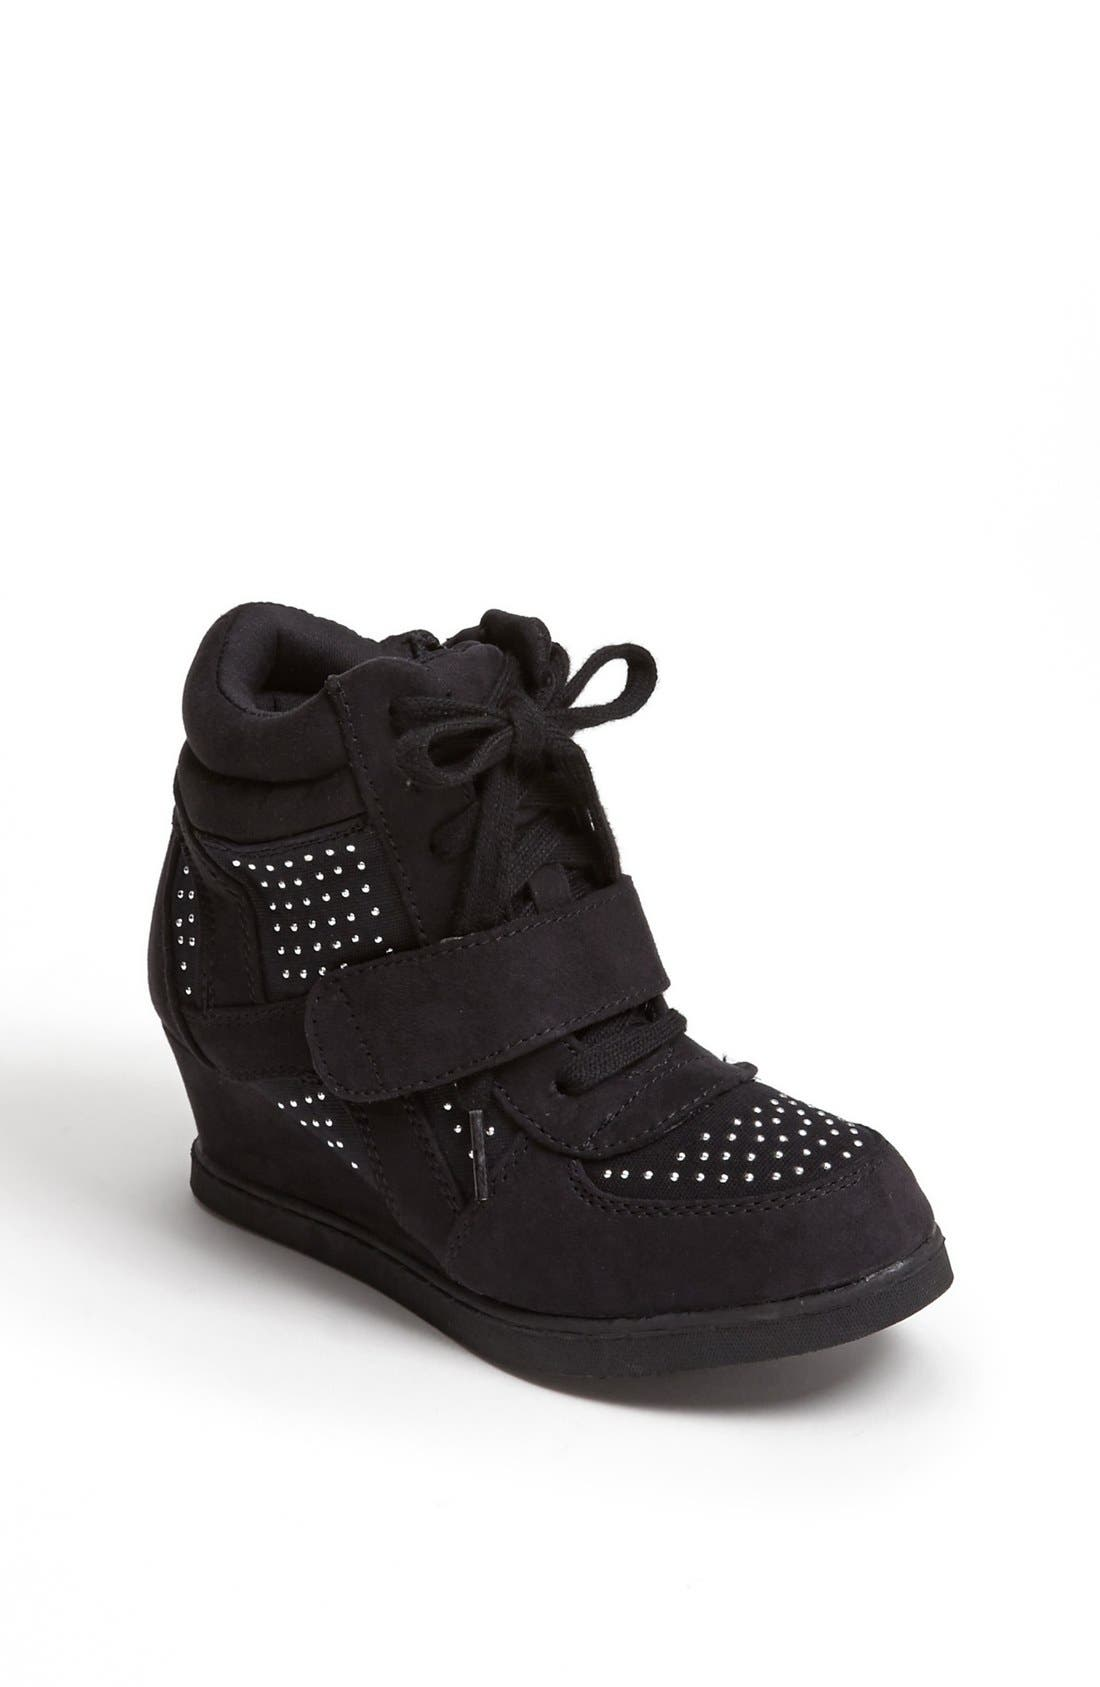 Alternate Image 1 Selected - Steve Madden 'Glamm' Sneaker Wedge (Little Kid & Big Kid)